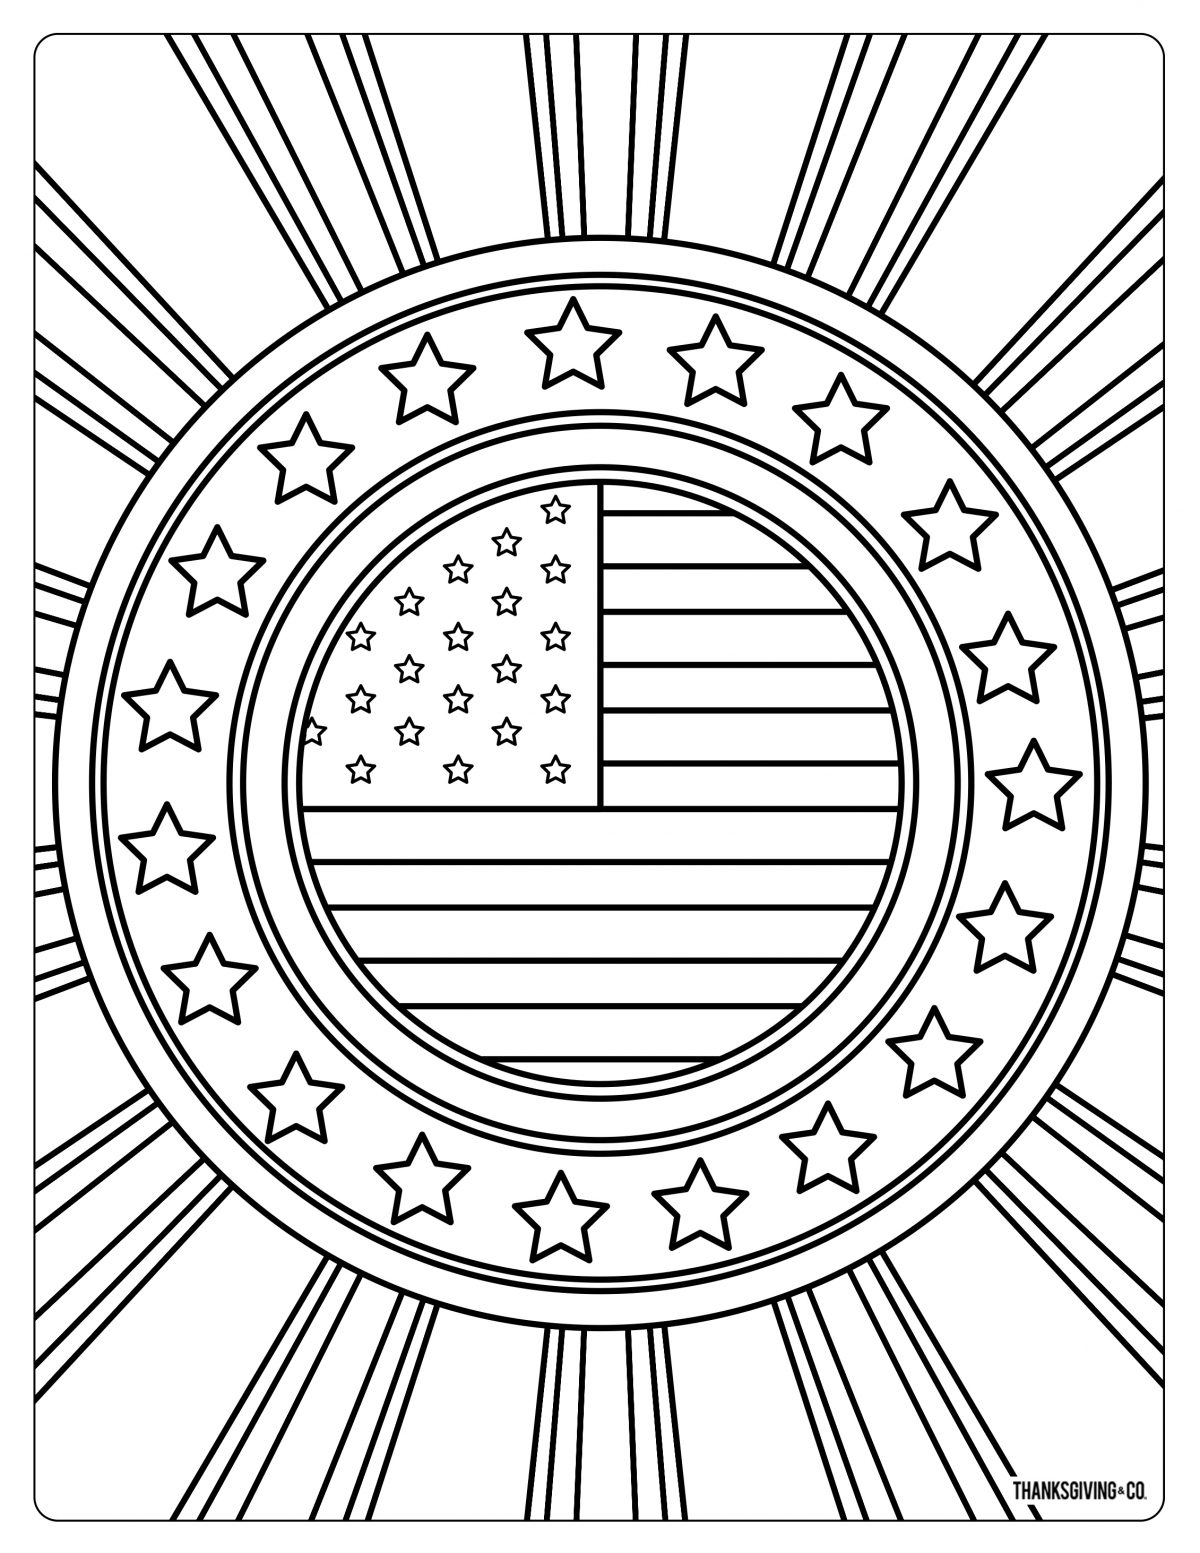 Free Memorial Day Coloring Pages Amp Cards You Can Print At Home